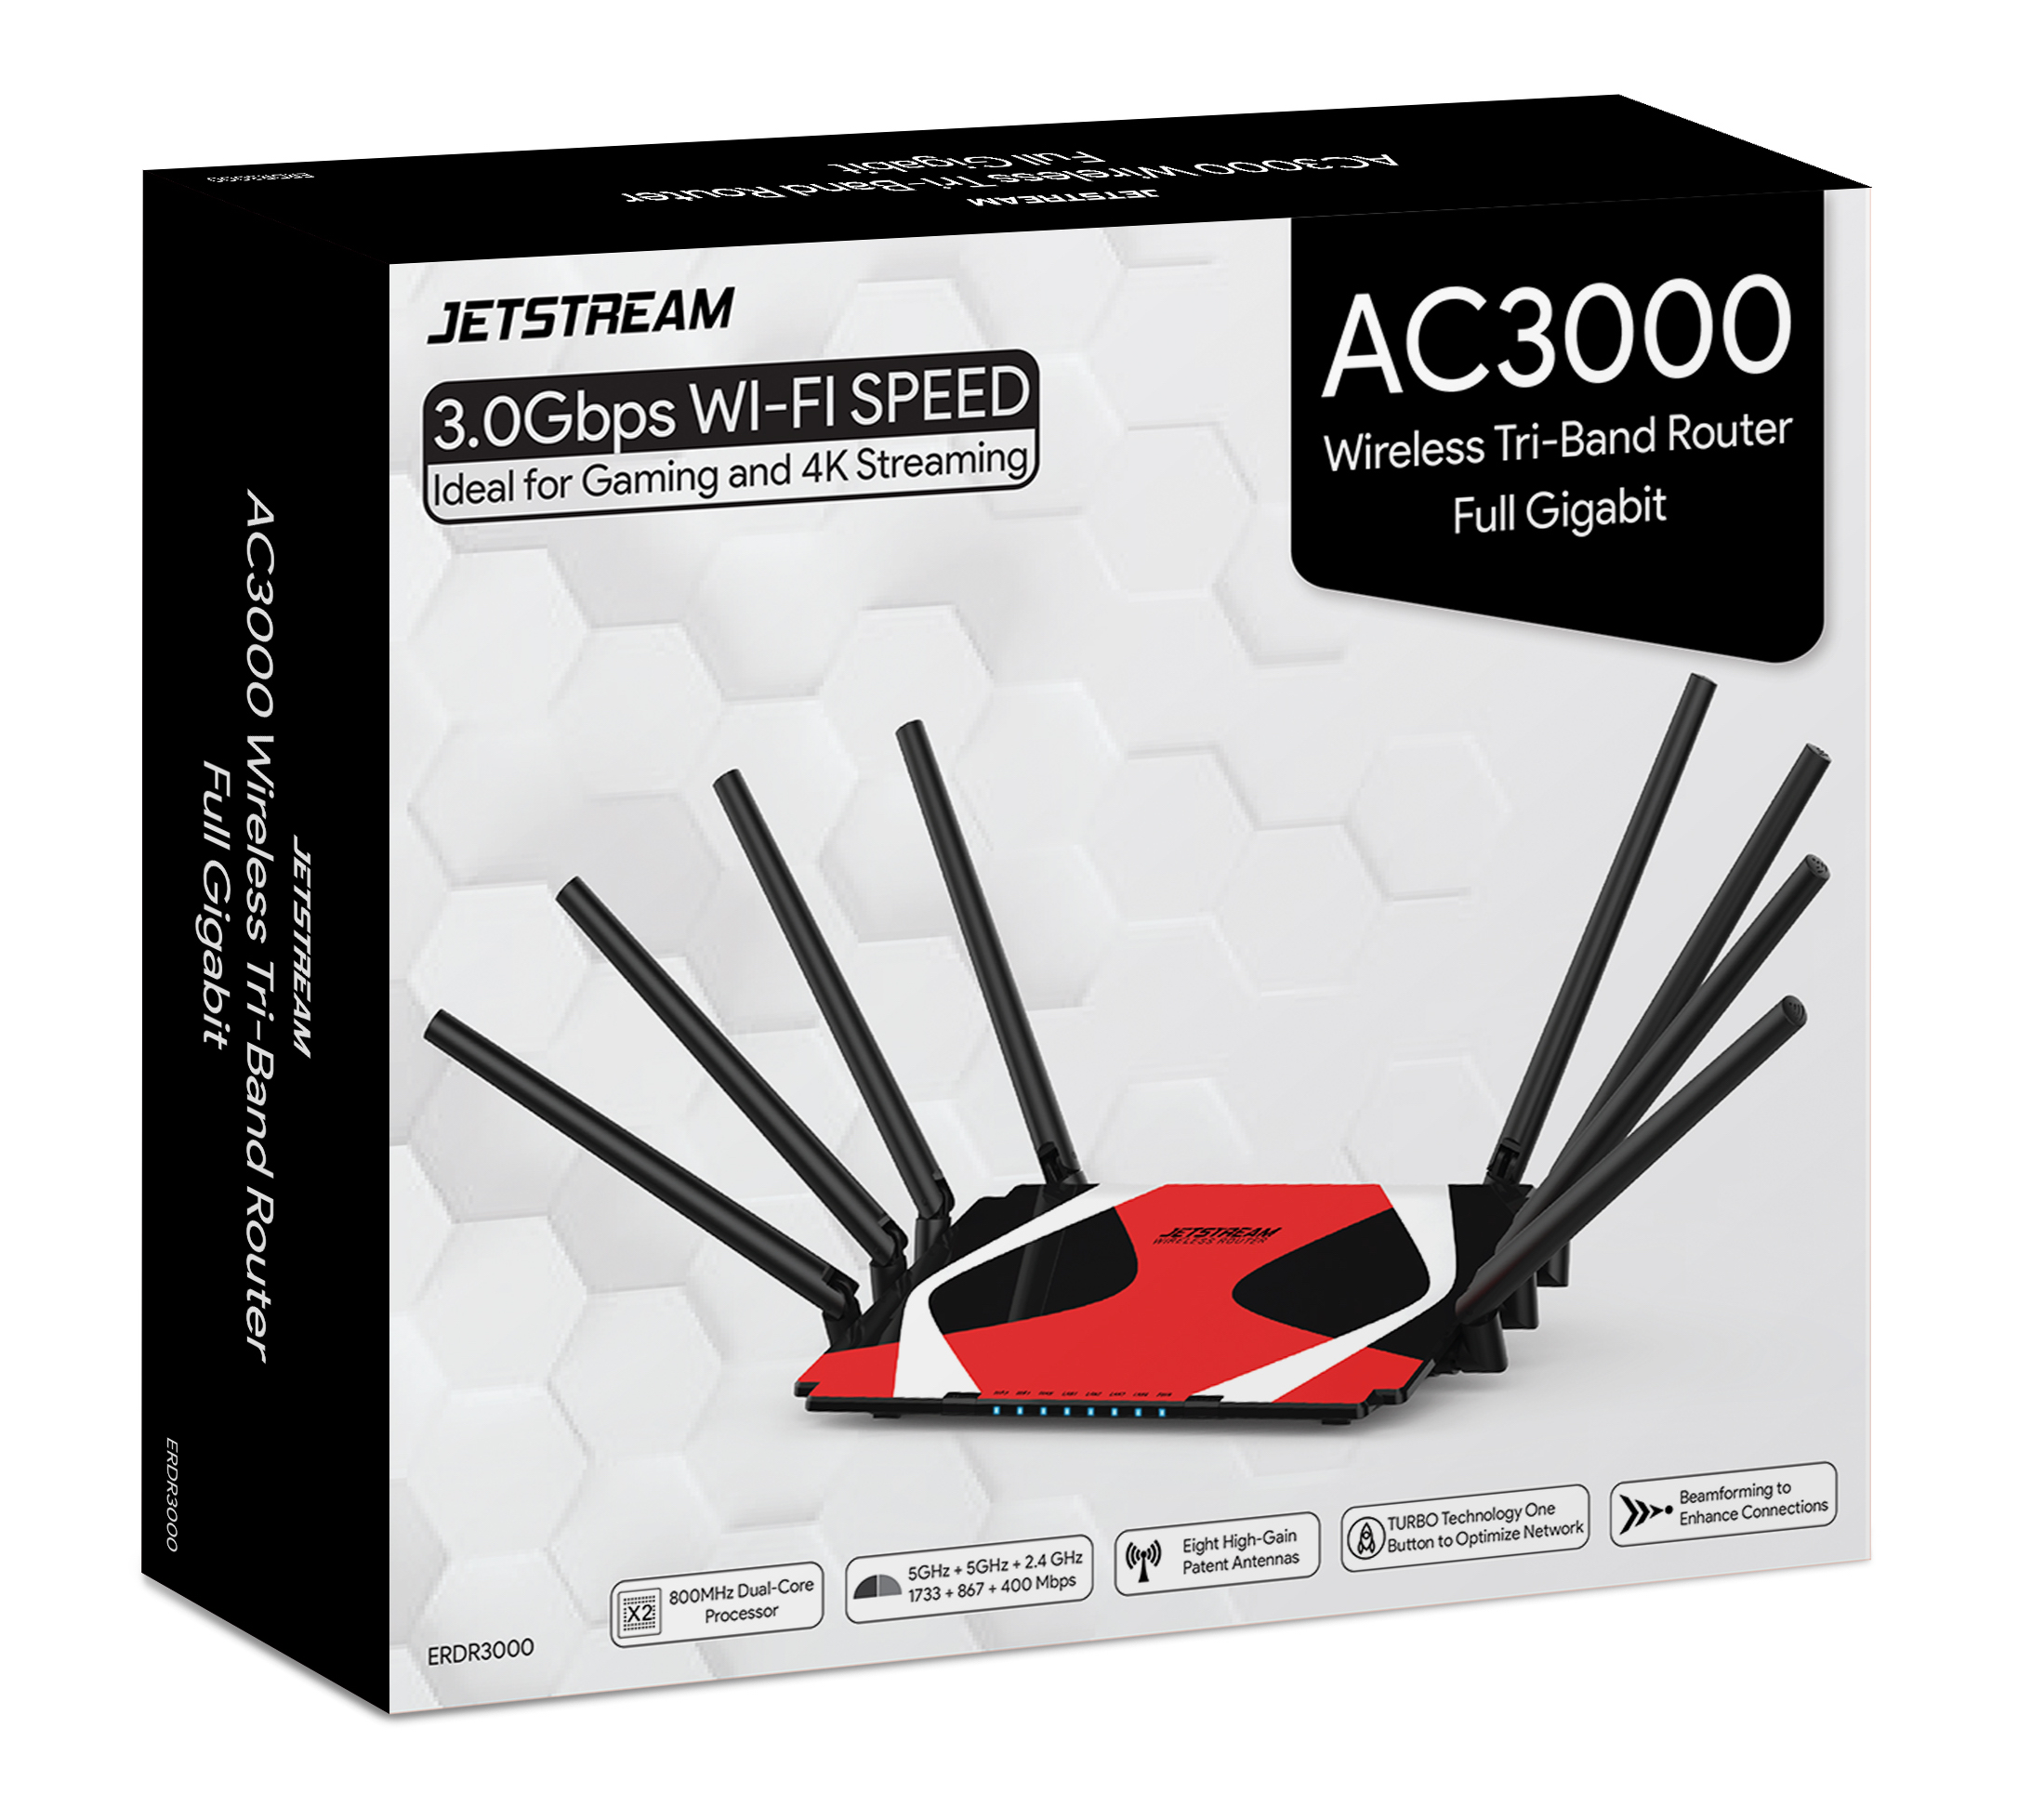 Jetstream AC3000 Tri-Band WiFi Gaming Router with 1GB RAM and 800 MHz Dual-Core Processing - Walmart Exclusive!